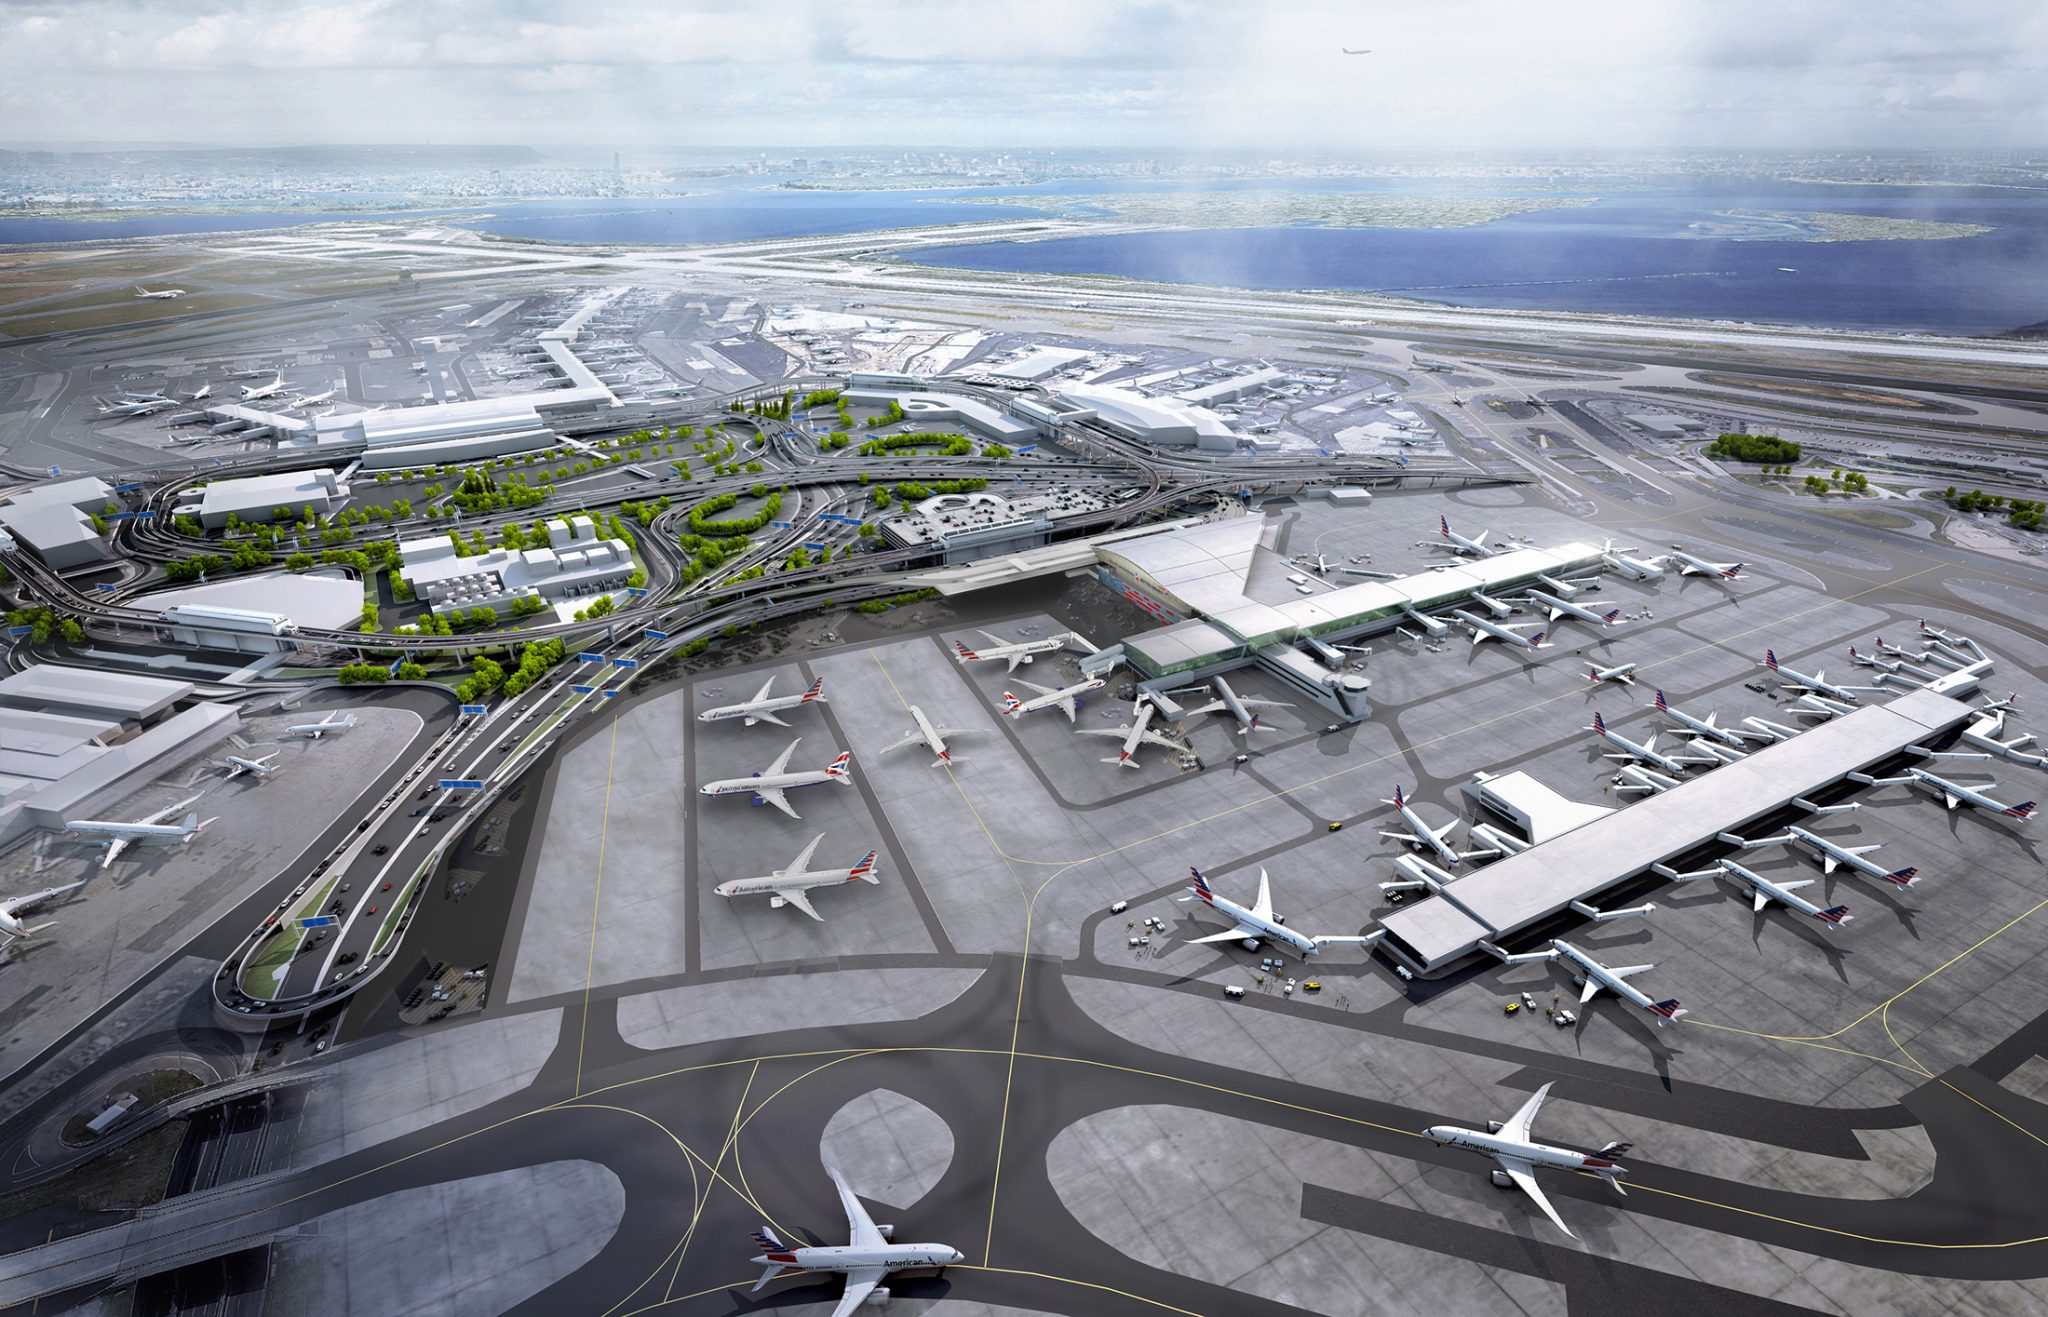 New Terminal One at JFK Airport receives approval of proposed lease